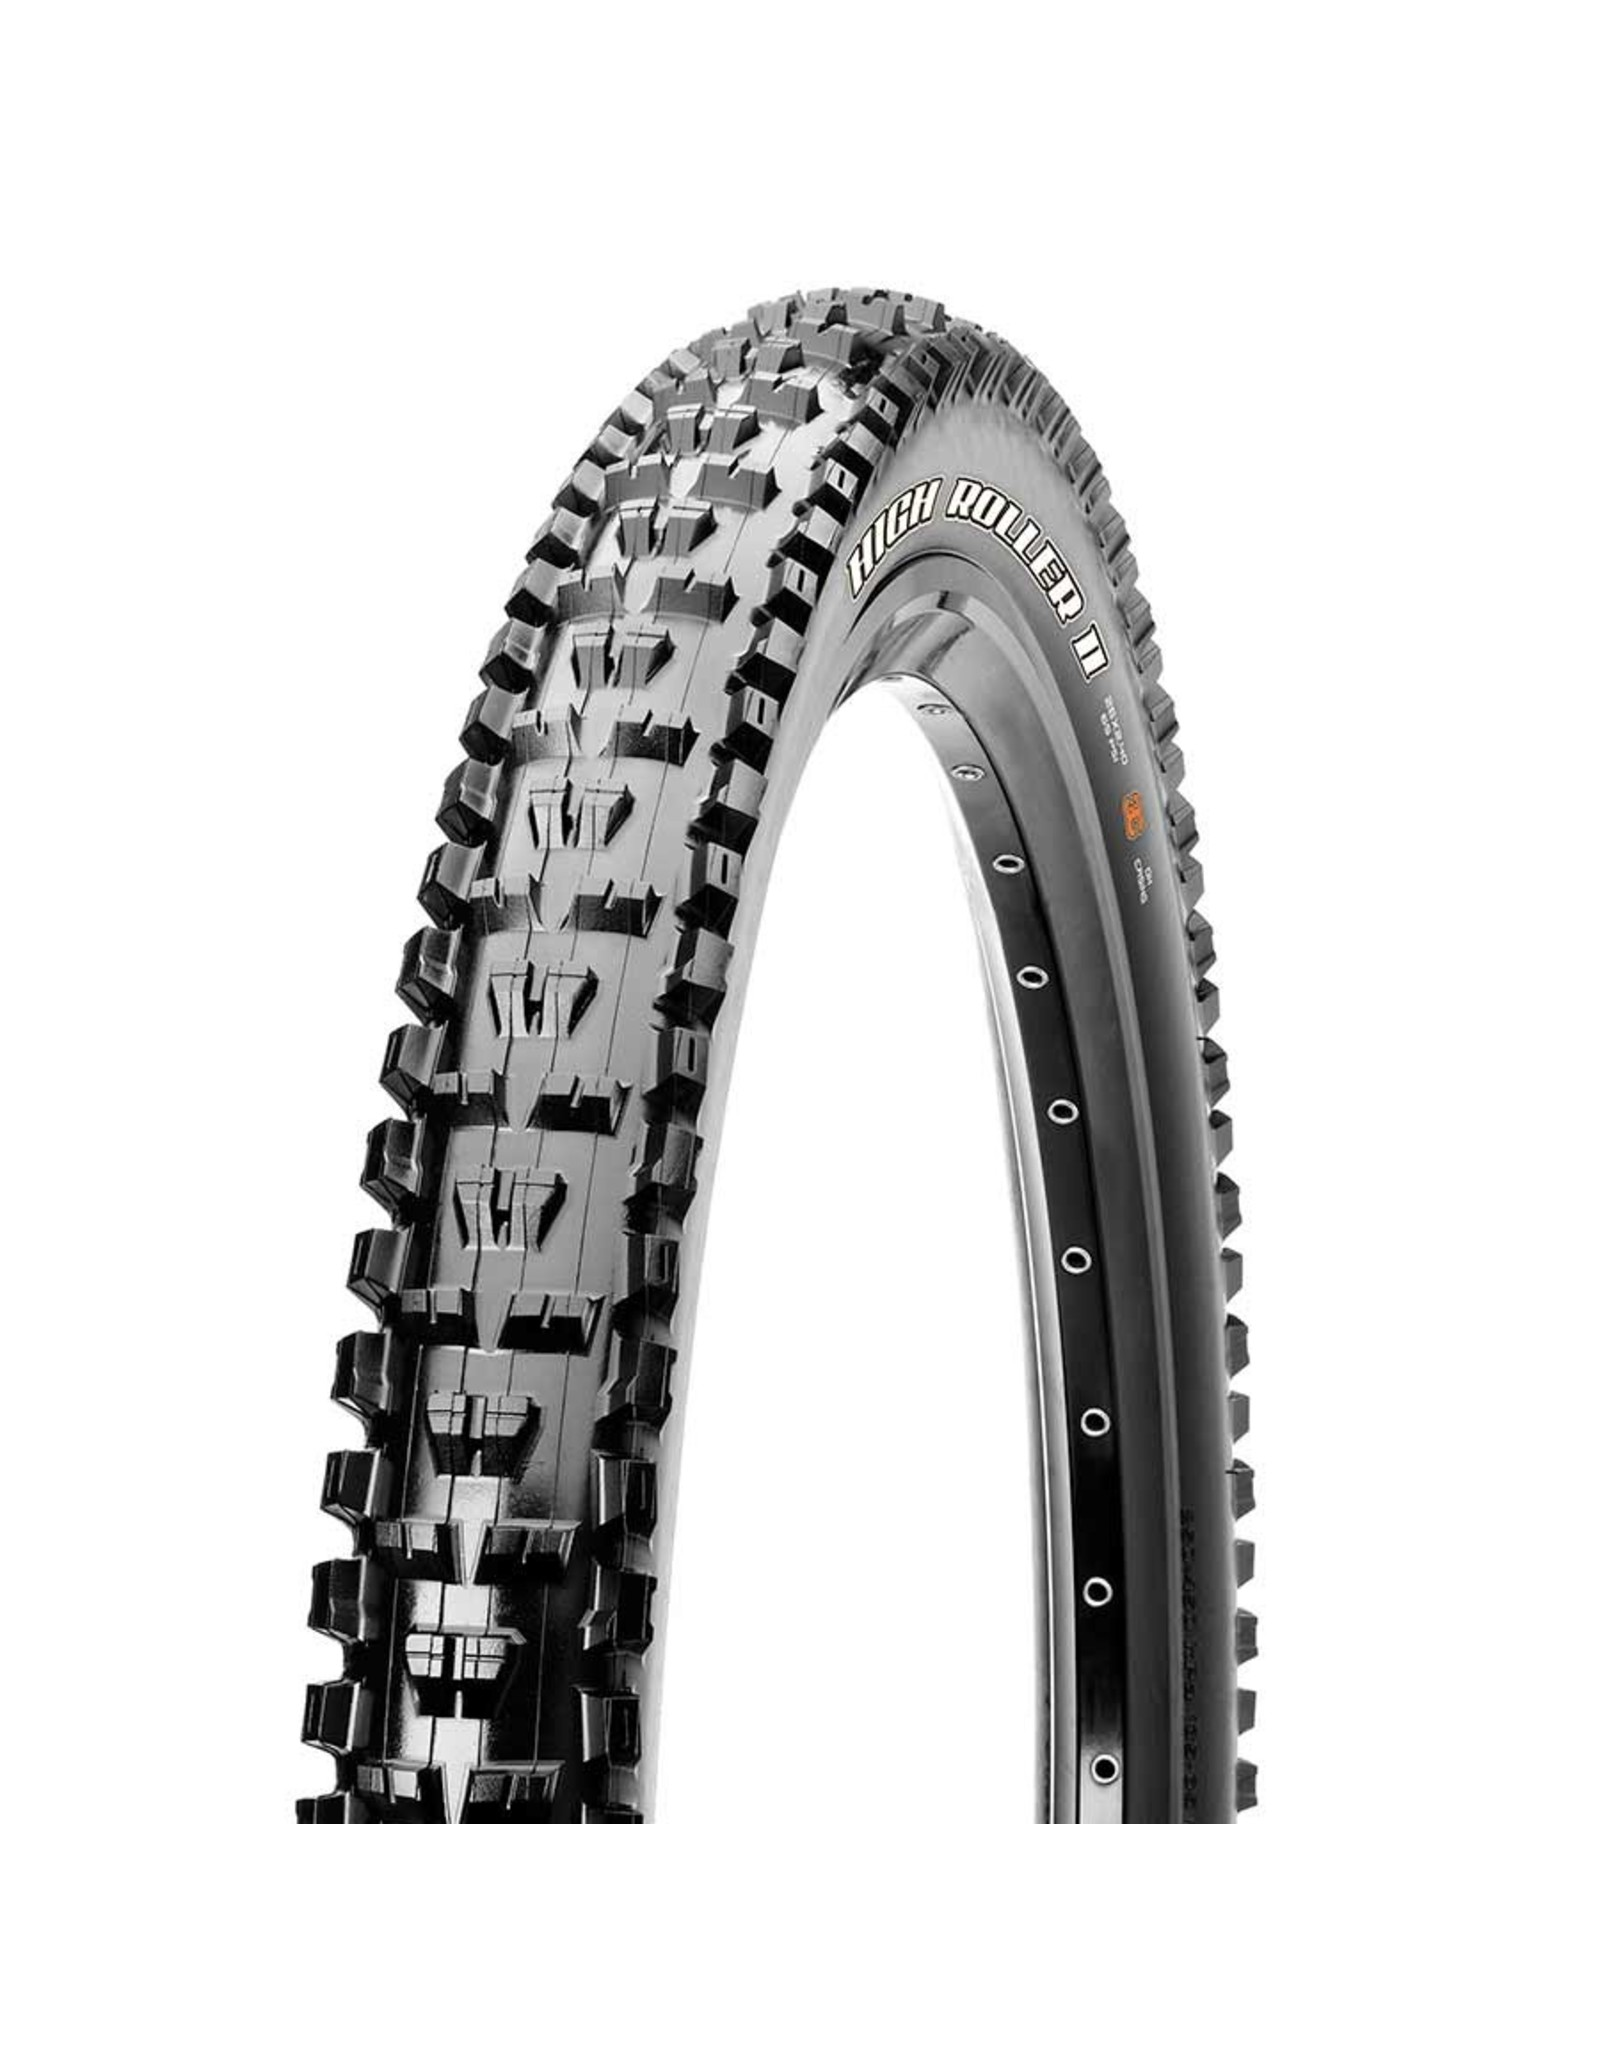 Maxxis Maxxis, High Roller II, Tire, 27.5''x2.40, Folding, Tubeless Ready, 3C Maxx Grip, 2-ply, 60TPI, Black